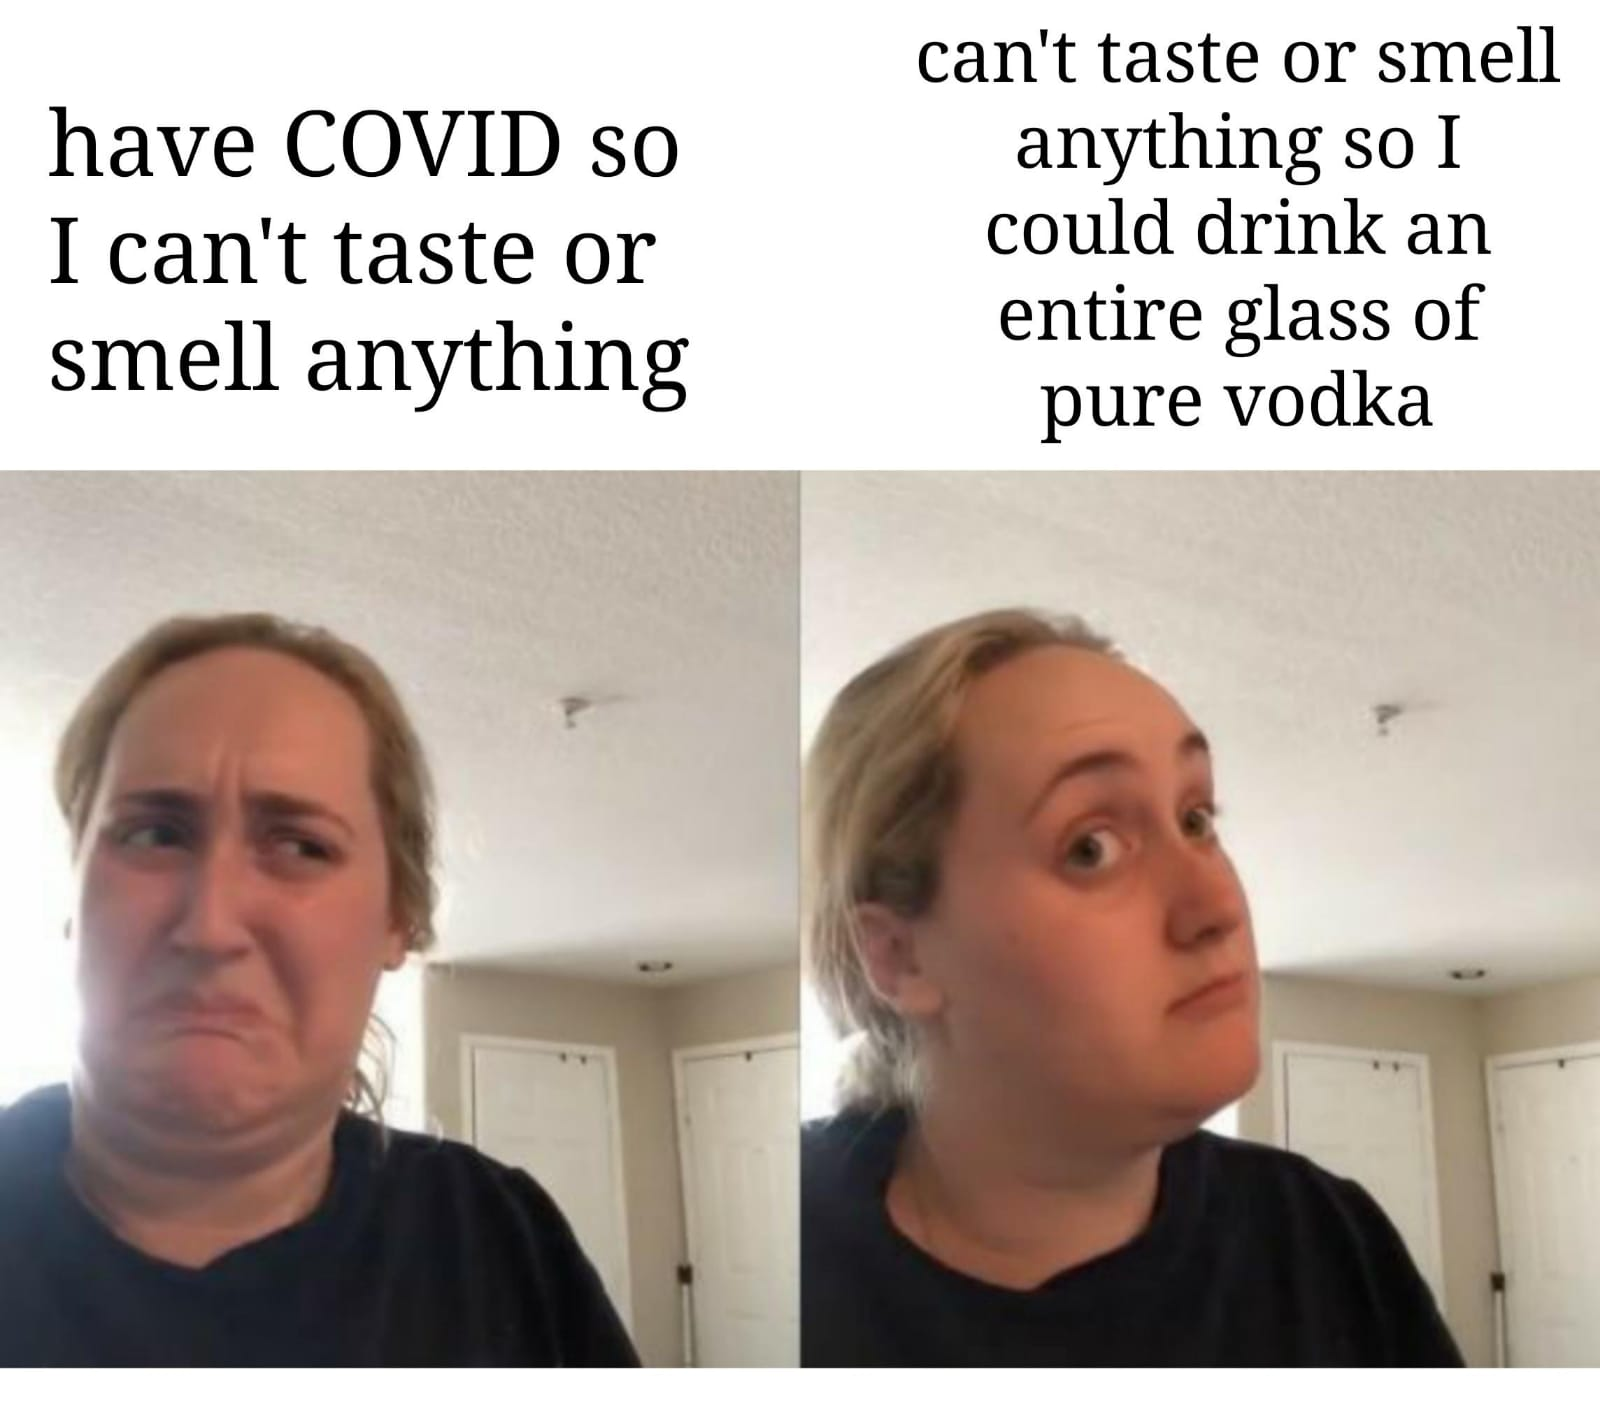 Advantages of having Covid